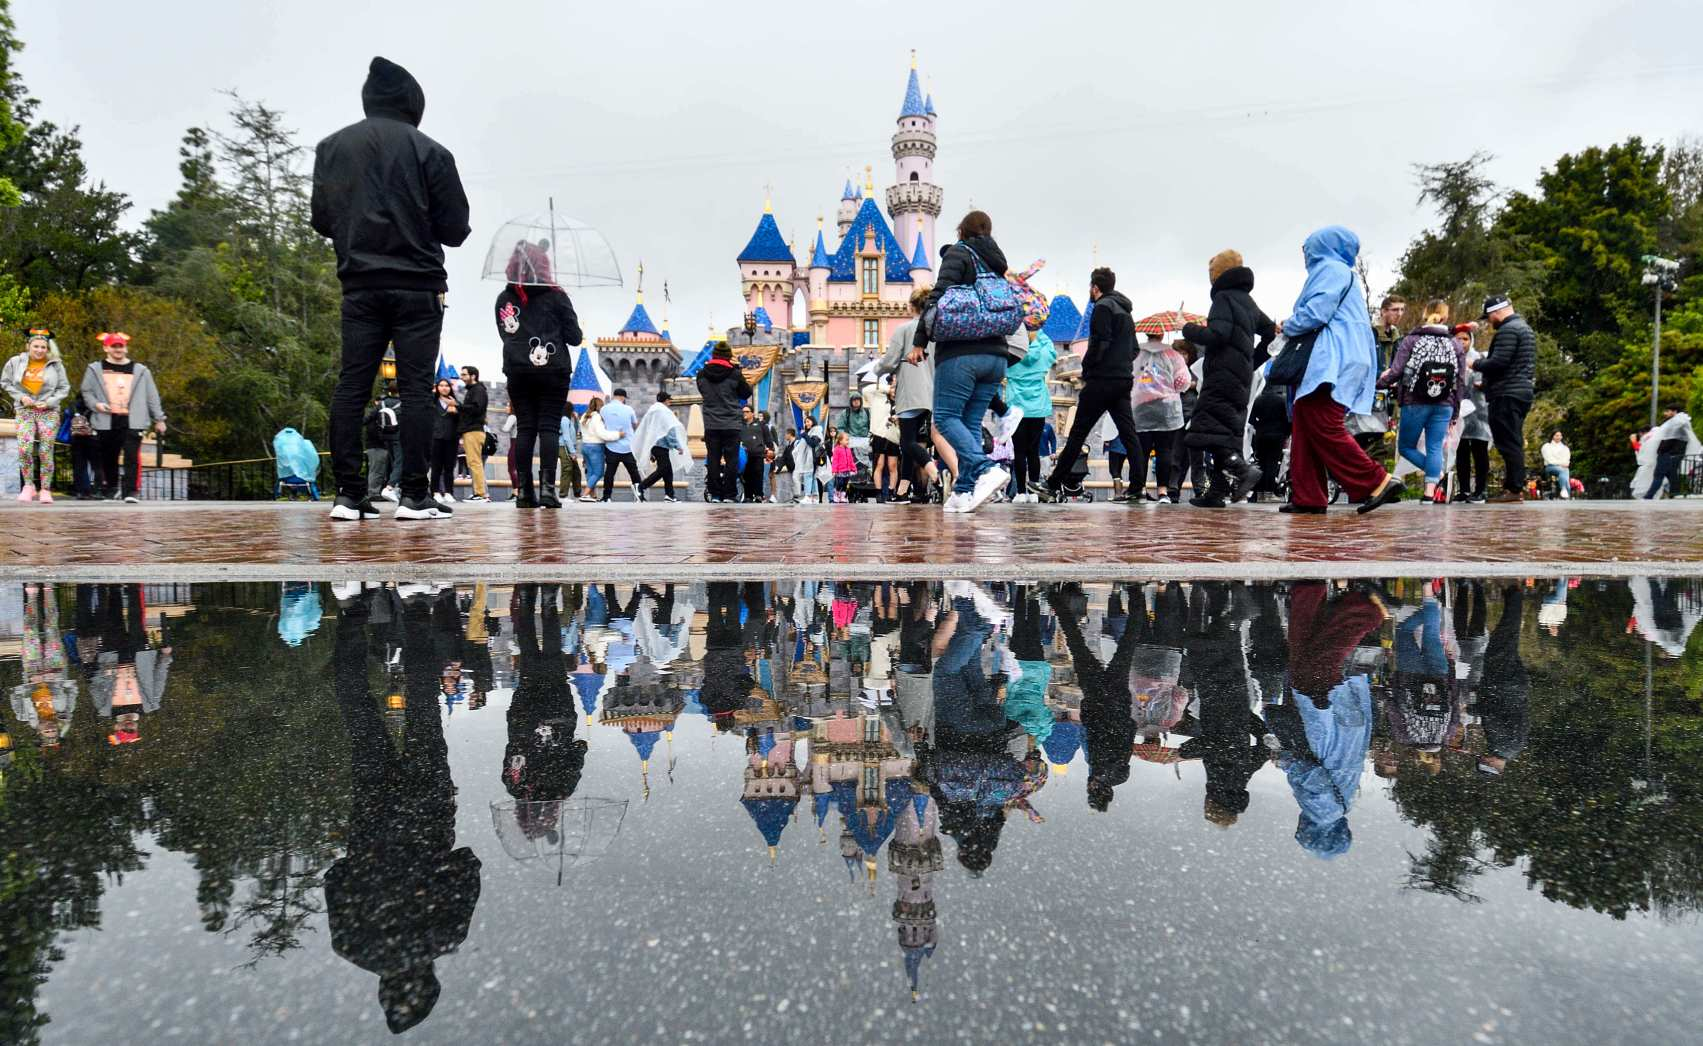 Assembly bill seeks to speed reopening of Disneyland and other California theme parks